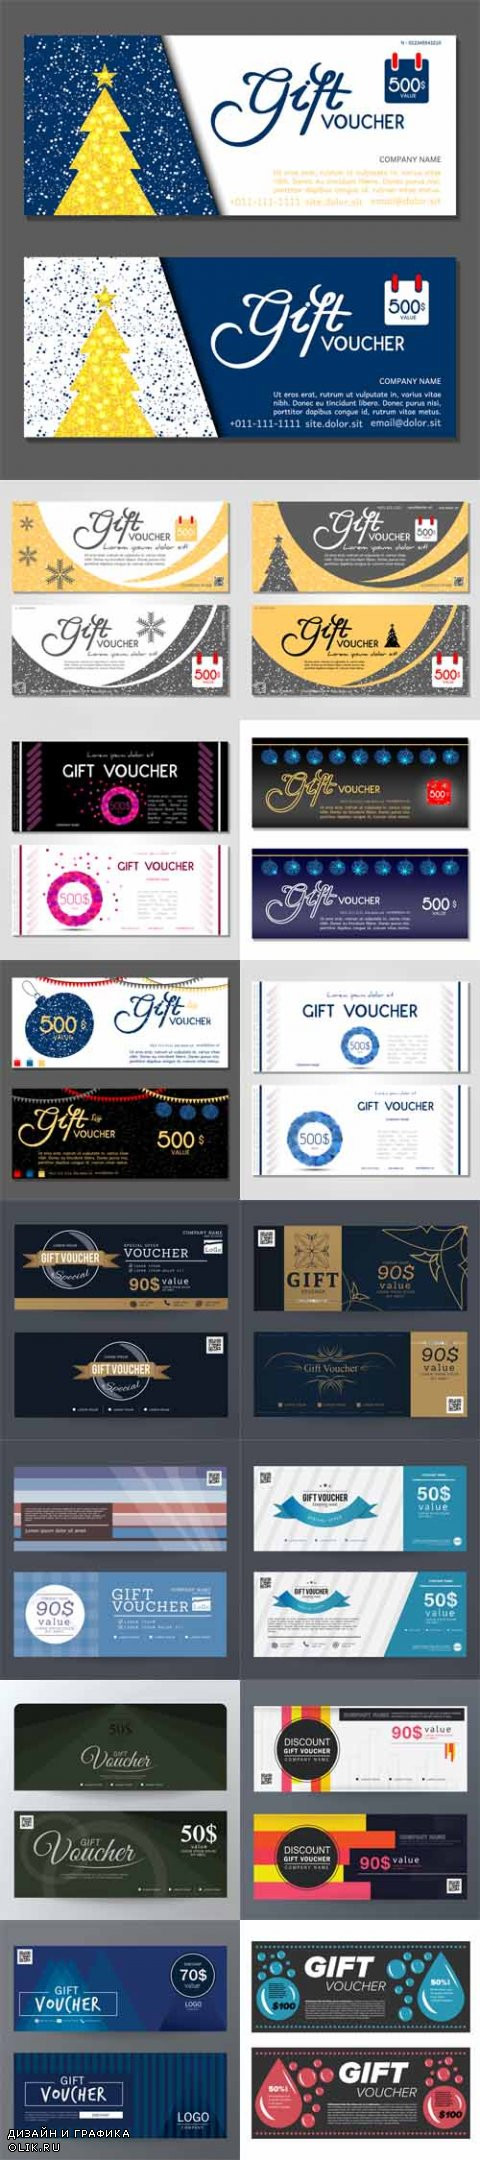 Vector Gift Voucher Illustrations. Card Templates